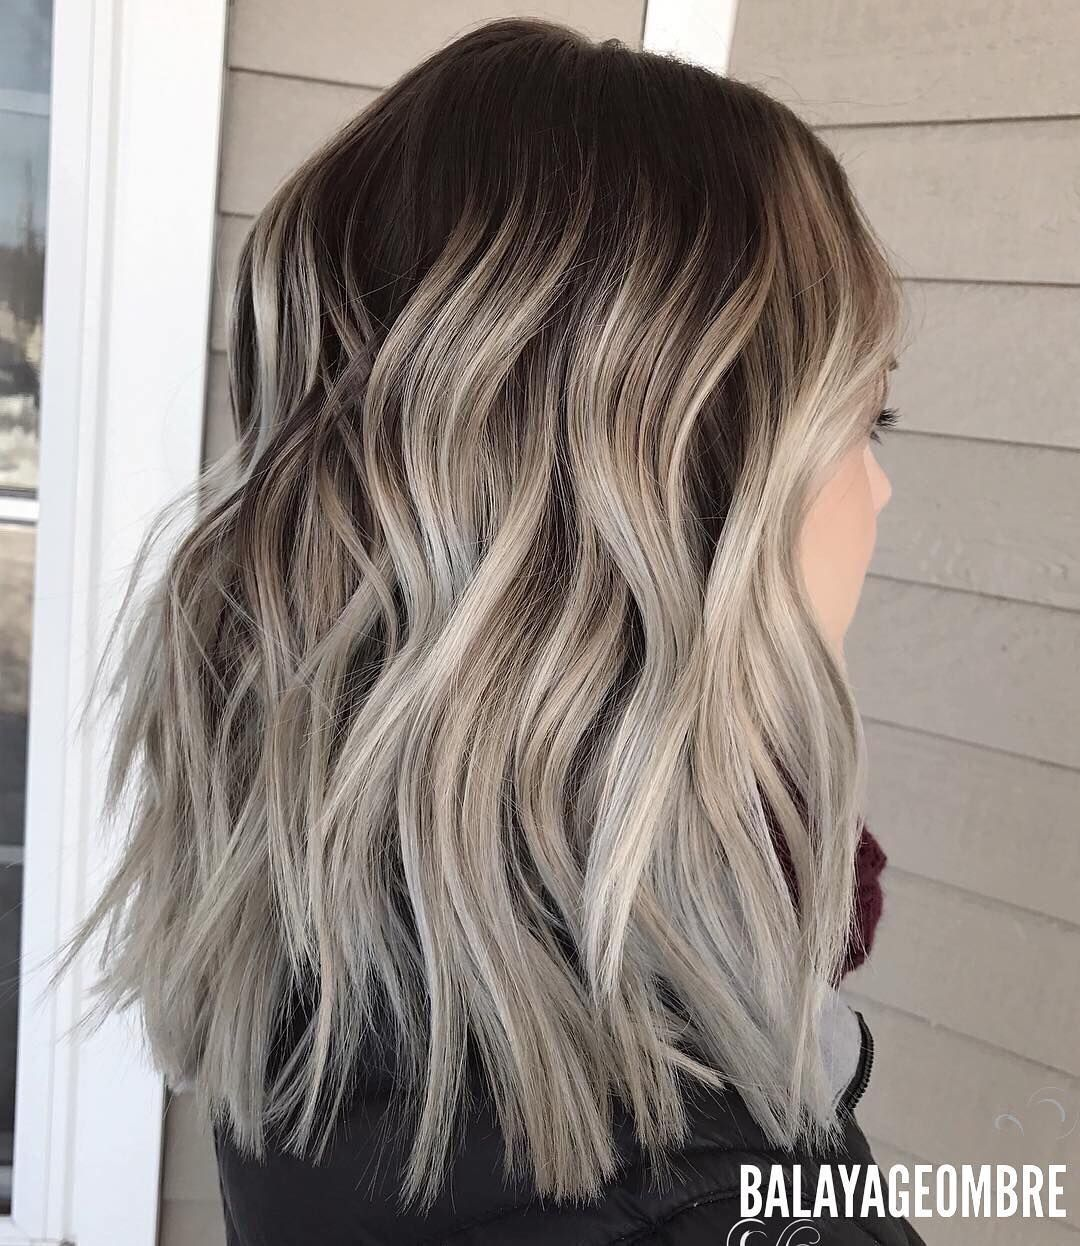 10 Medium Layered Hairstyles in Beige, Brown \u0026 Ash,Blonde